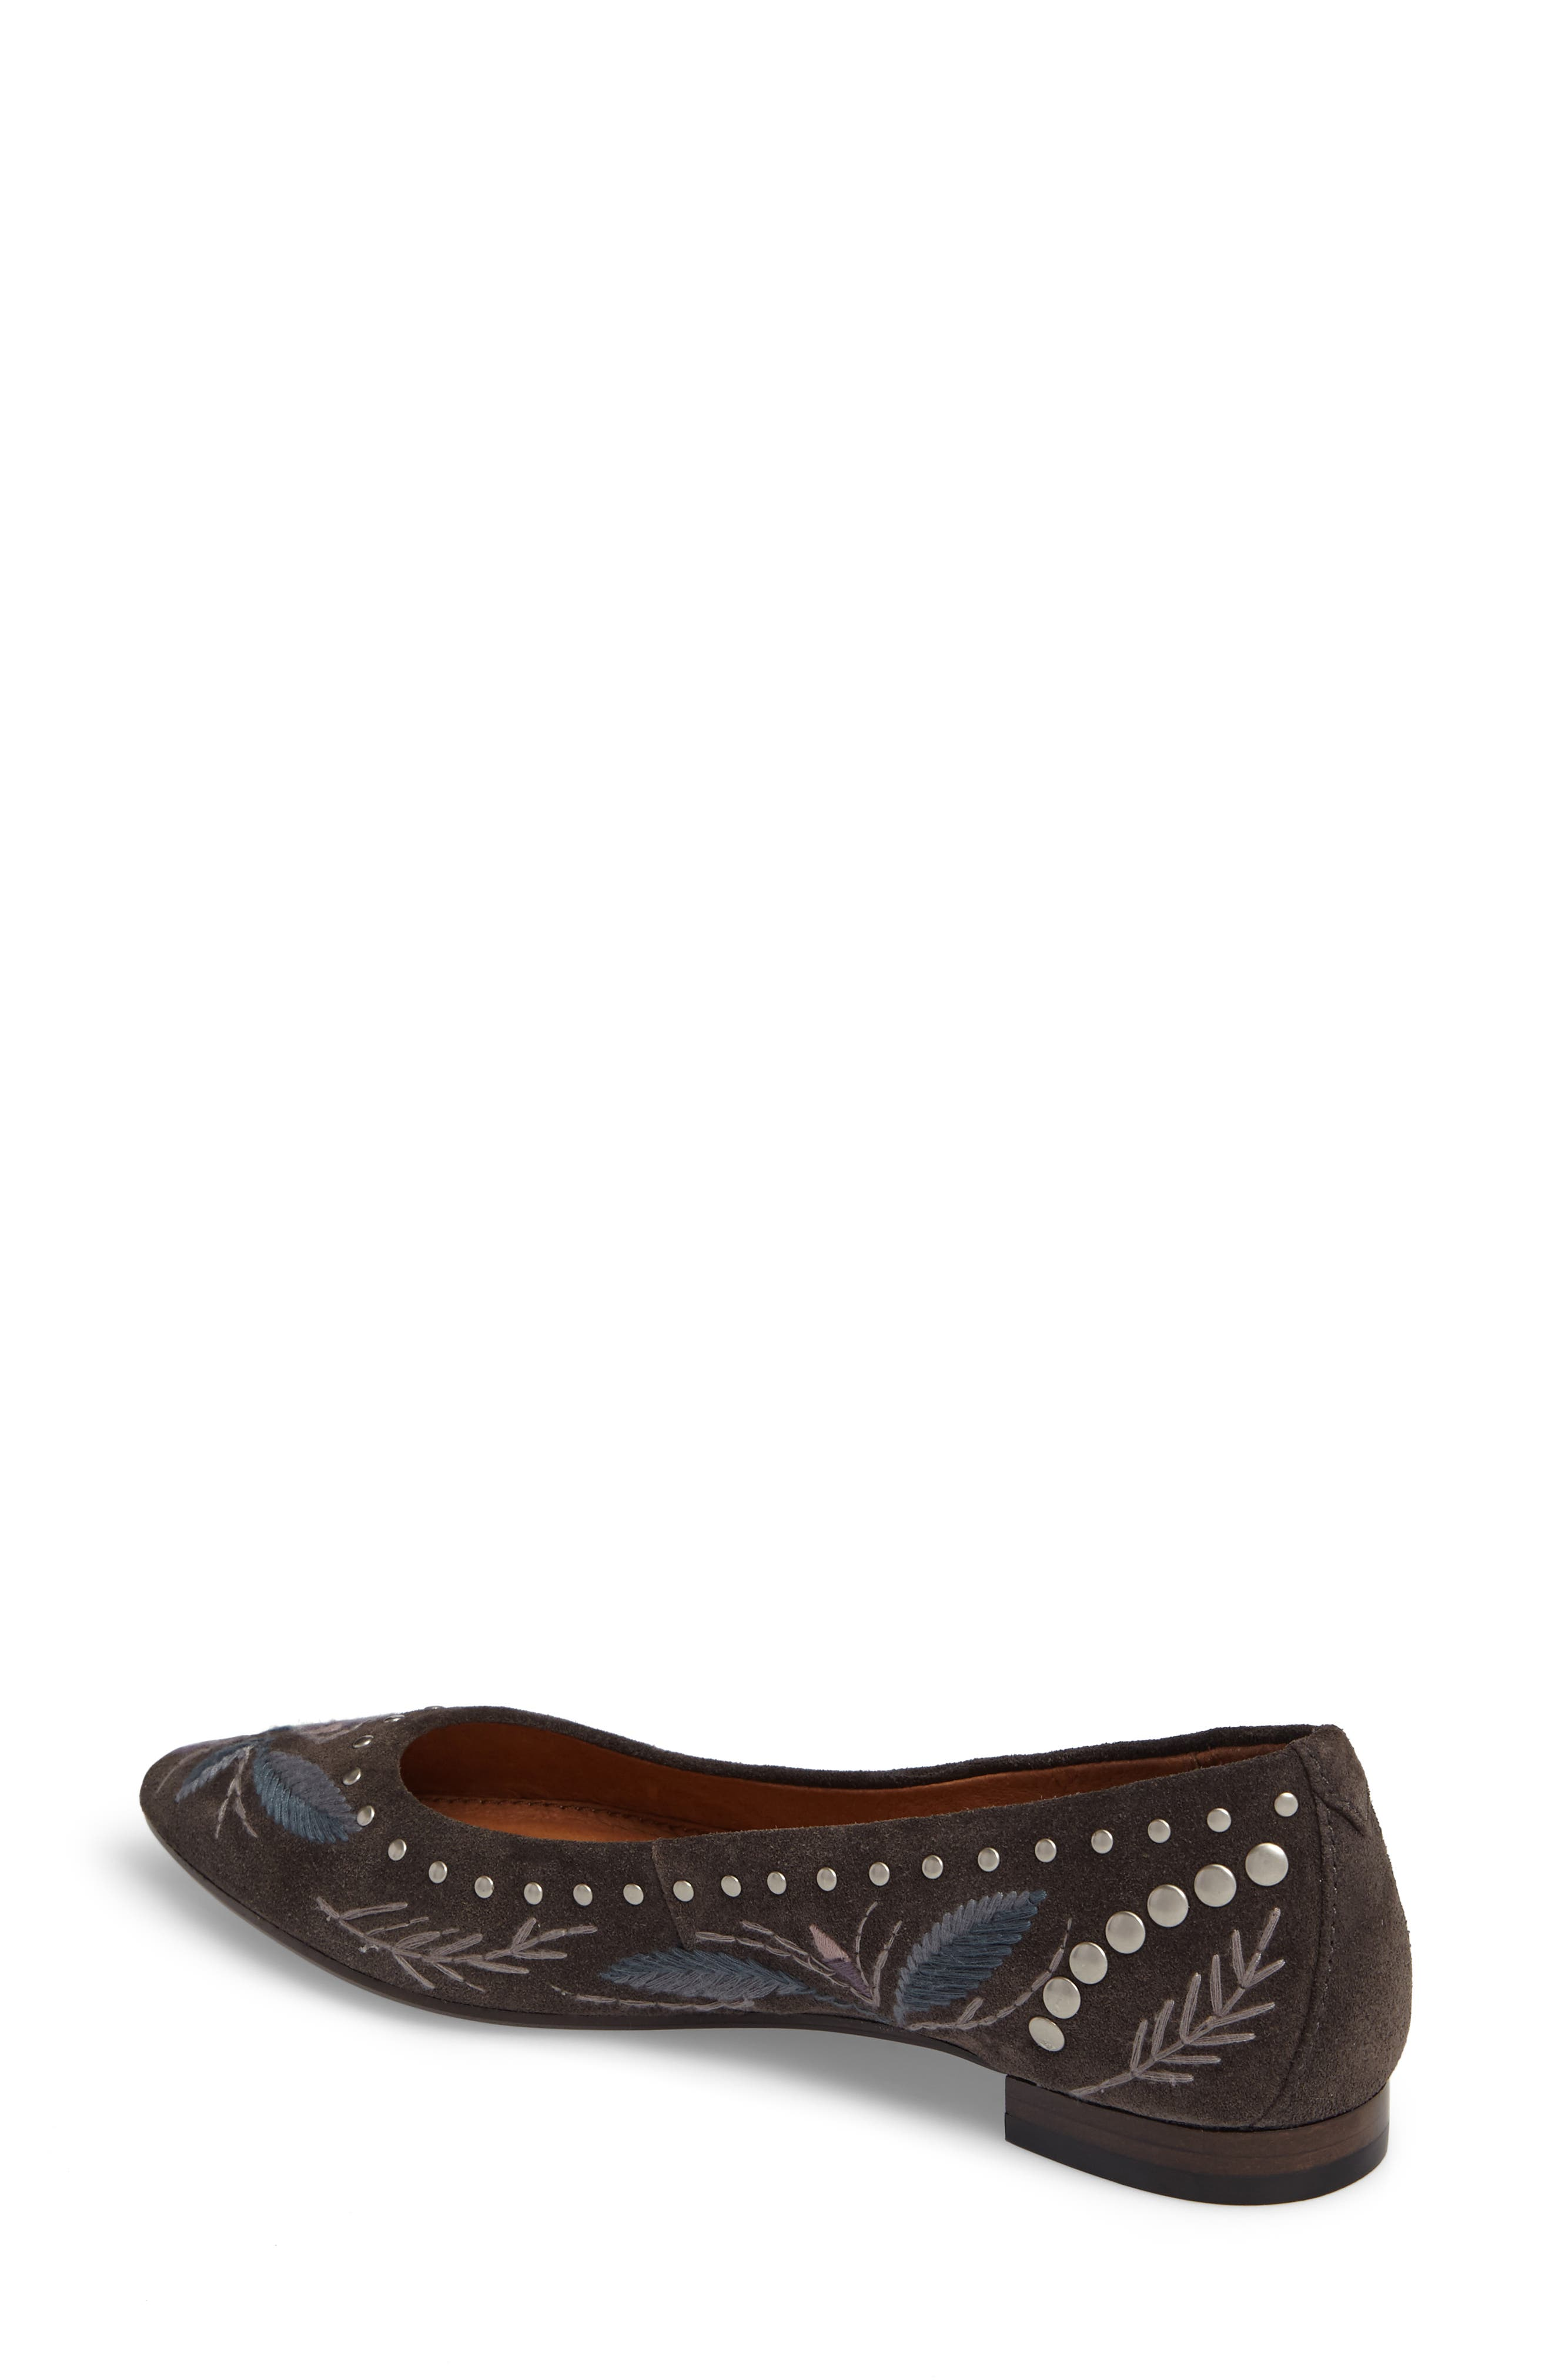 Sienna Embroidered Ballet Flat,                             Alternate thumbnail 2, color,                             030